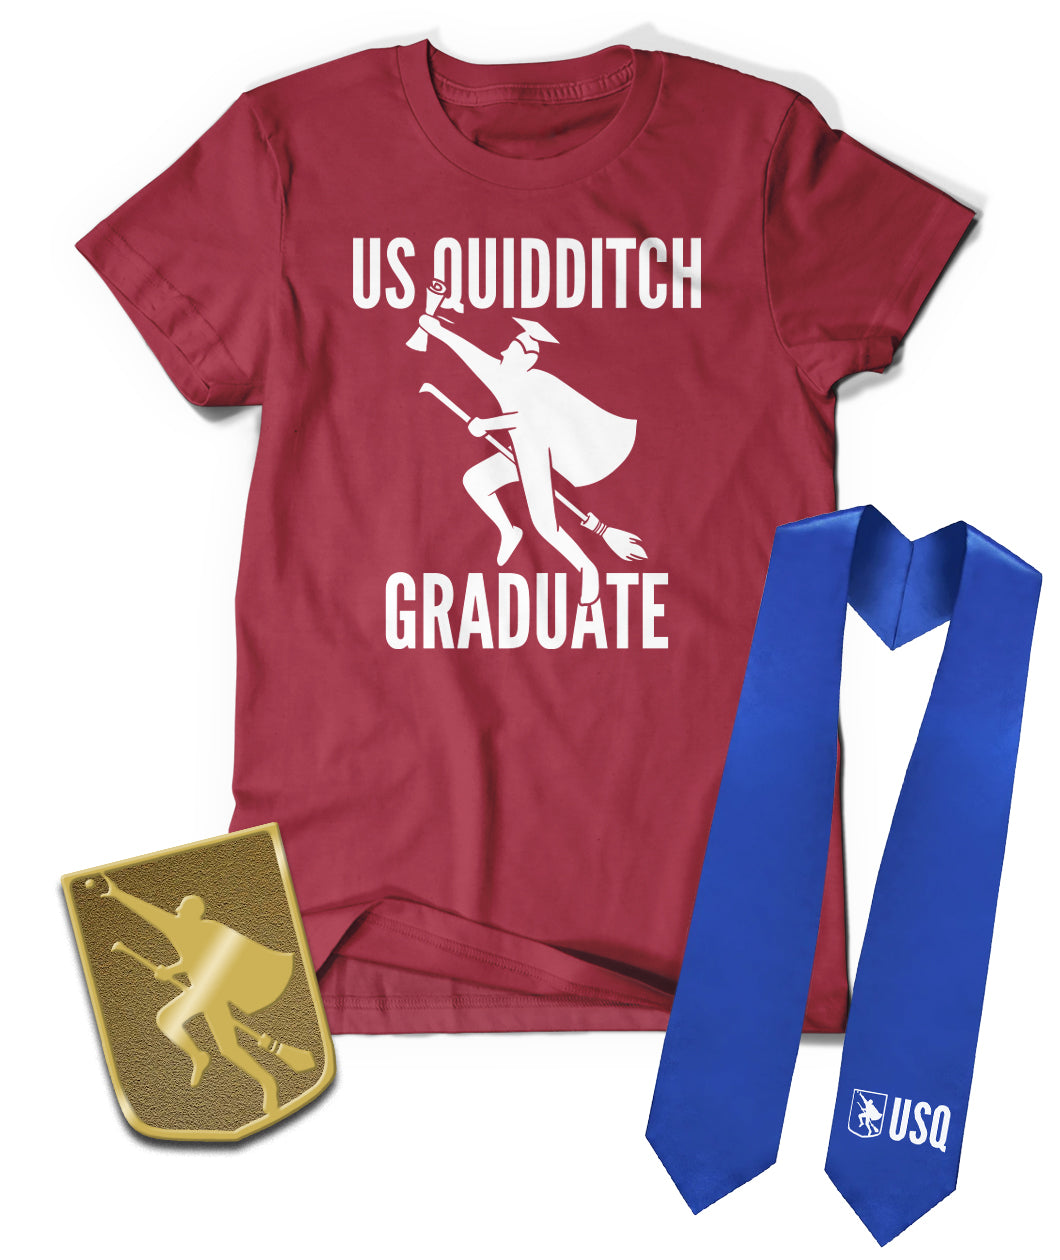 USQ Graduation Bundle - Shirt, Pin, & Stole